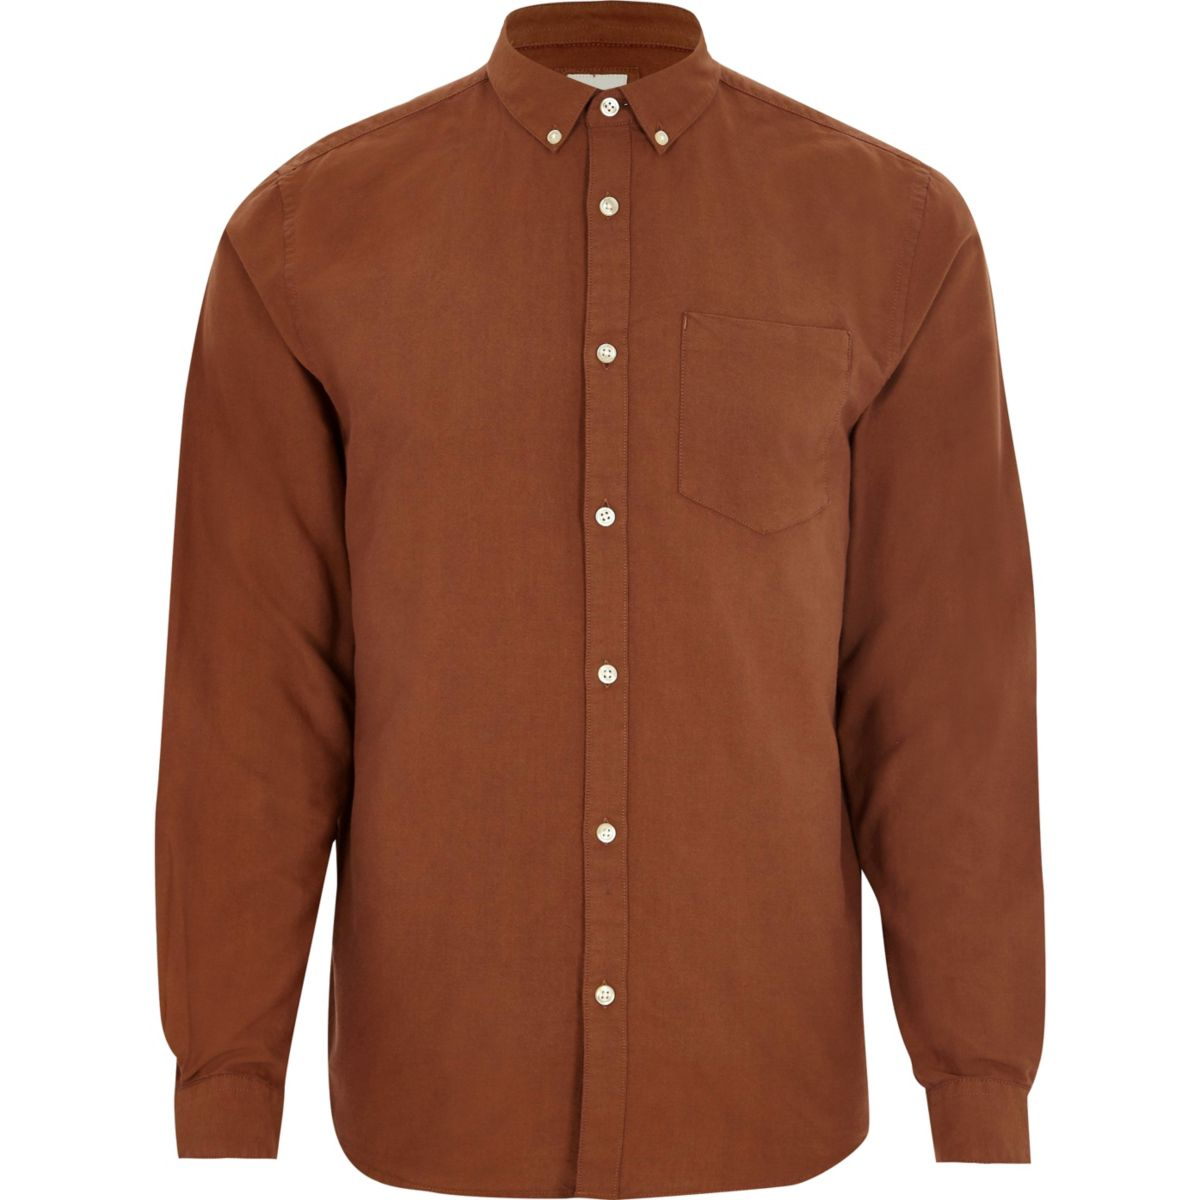 Brown long sleeve Oxford shirt